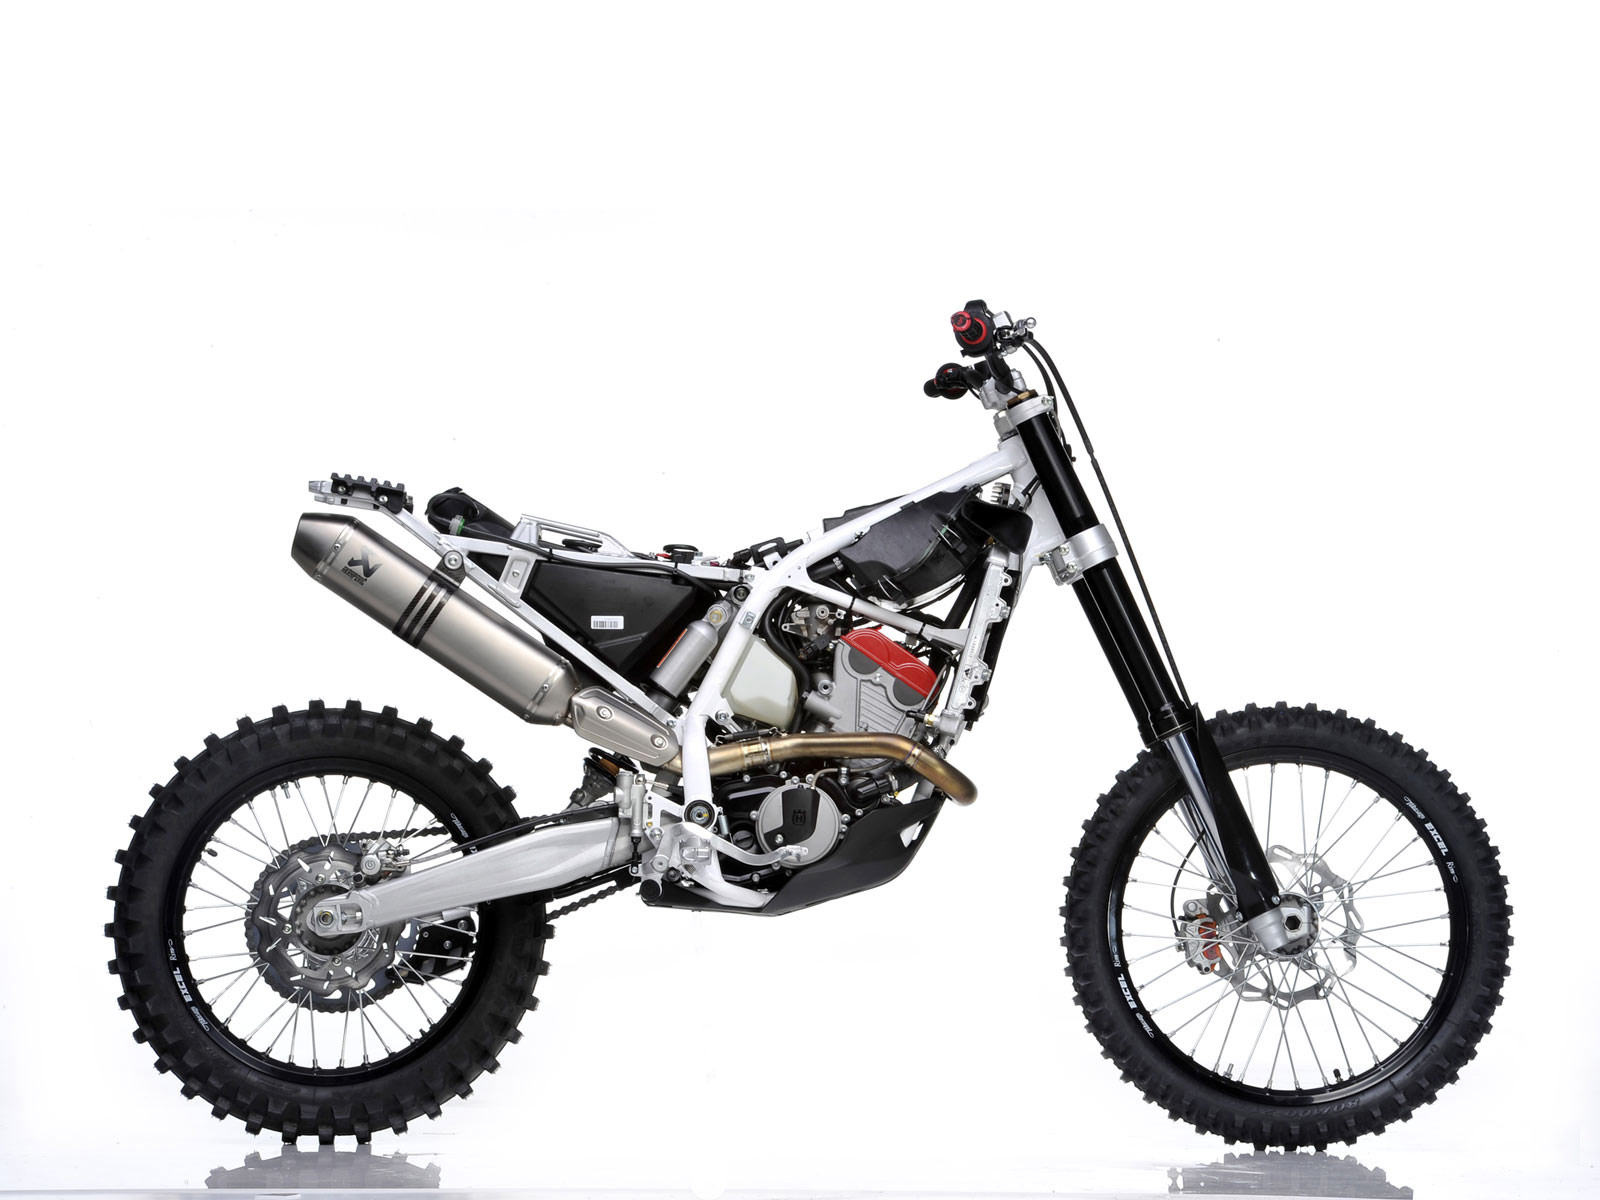 Husqvarna Tc 449 Motorcycle Pictures